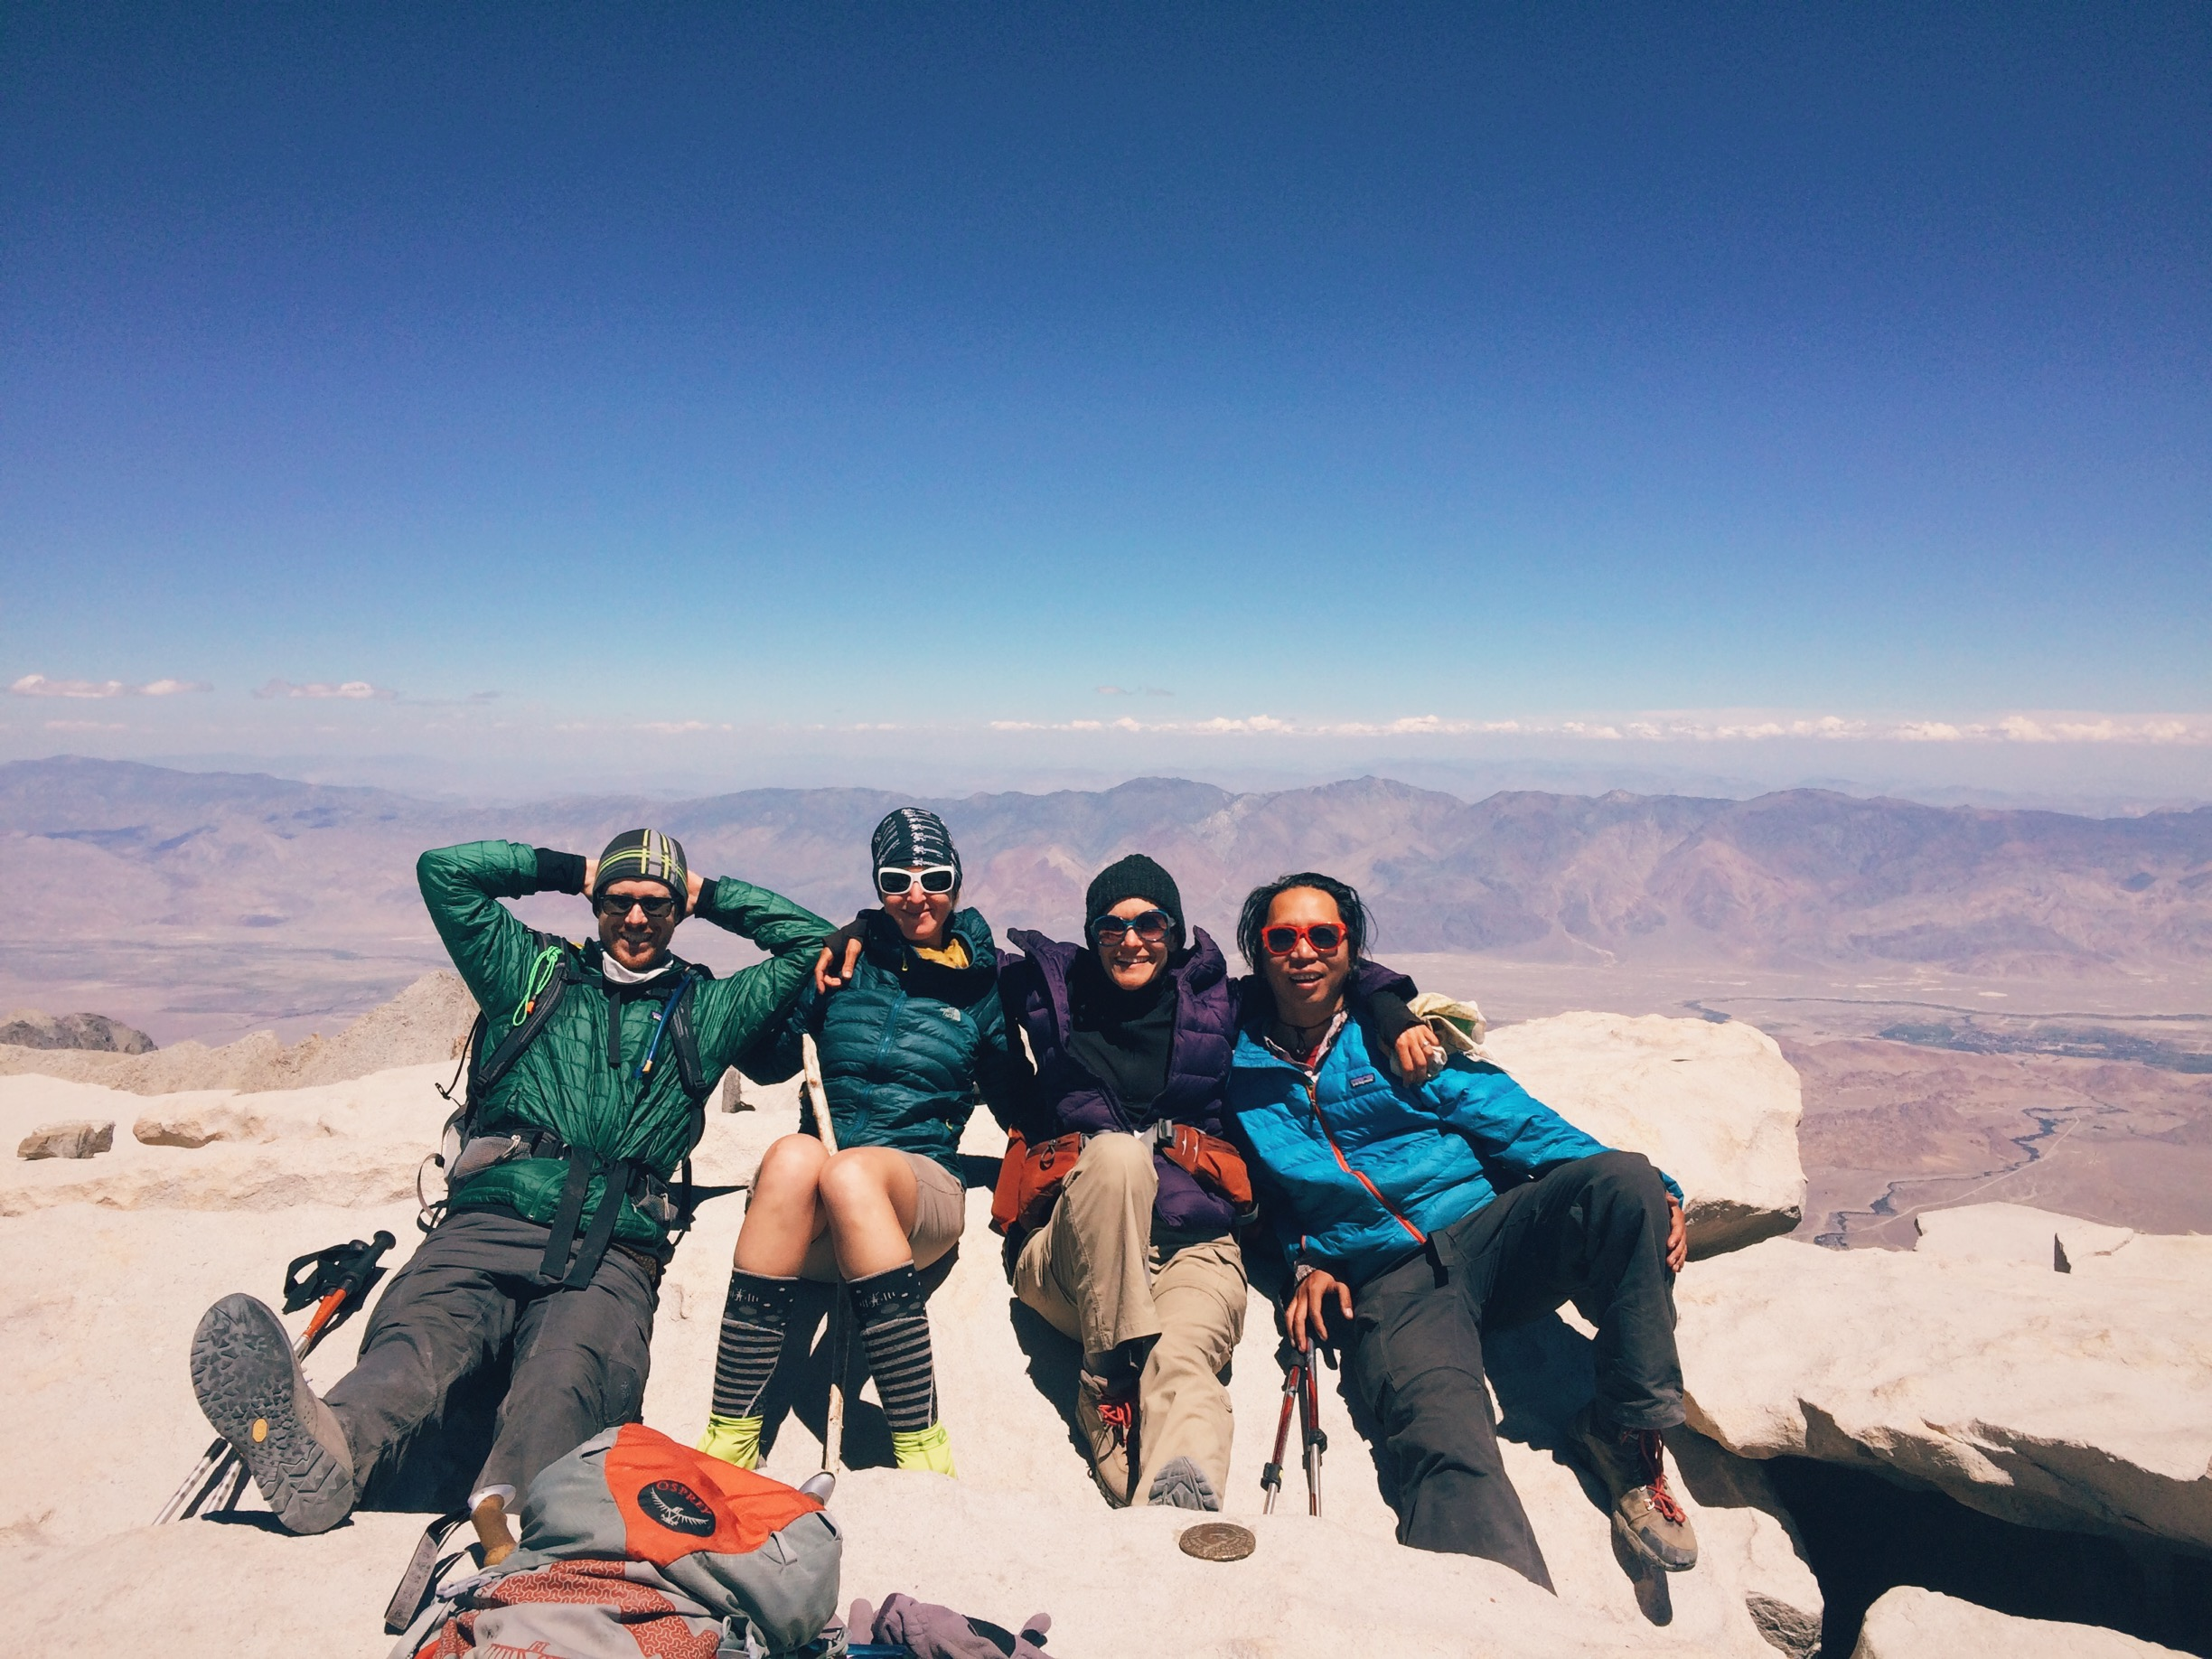 Glowing with accomplishment and UV radiation at 14,505 feet.